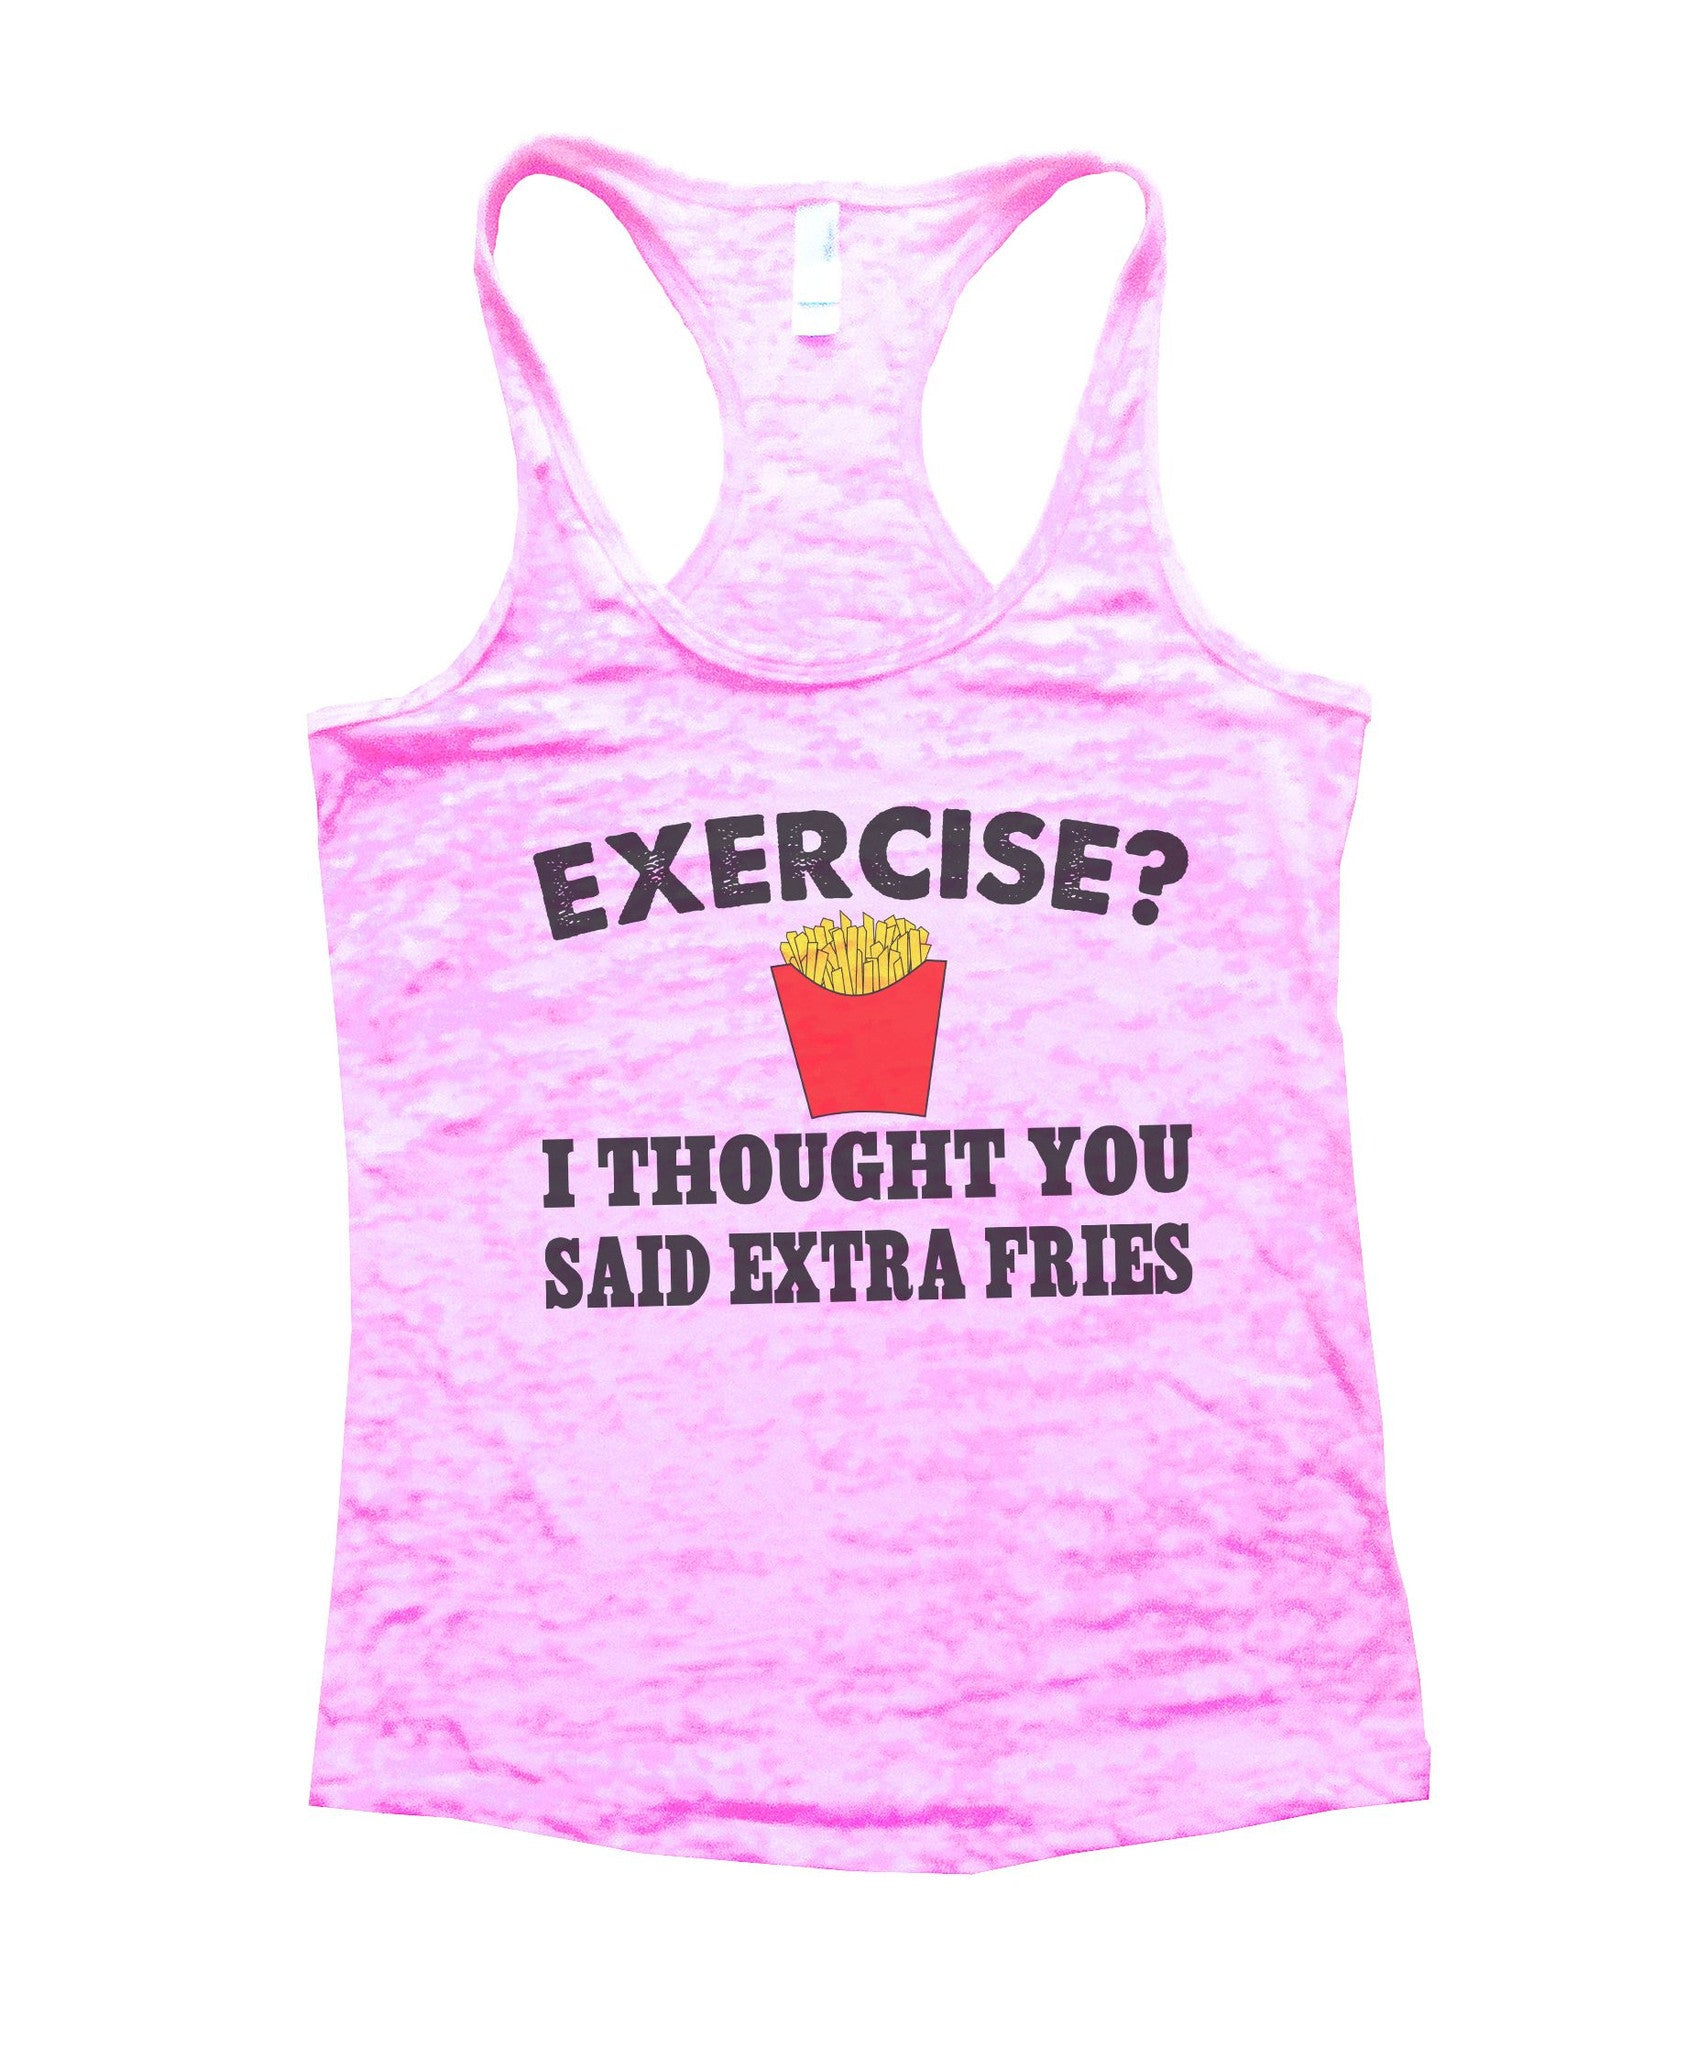 Exercise? I Thought You Said Extra Fries Burnout Tank Top By BurnoutTankTops.com - B32 - Funny Shirts Tank Tops Burnouts and Triblends  - 2